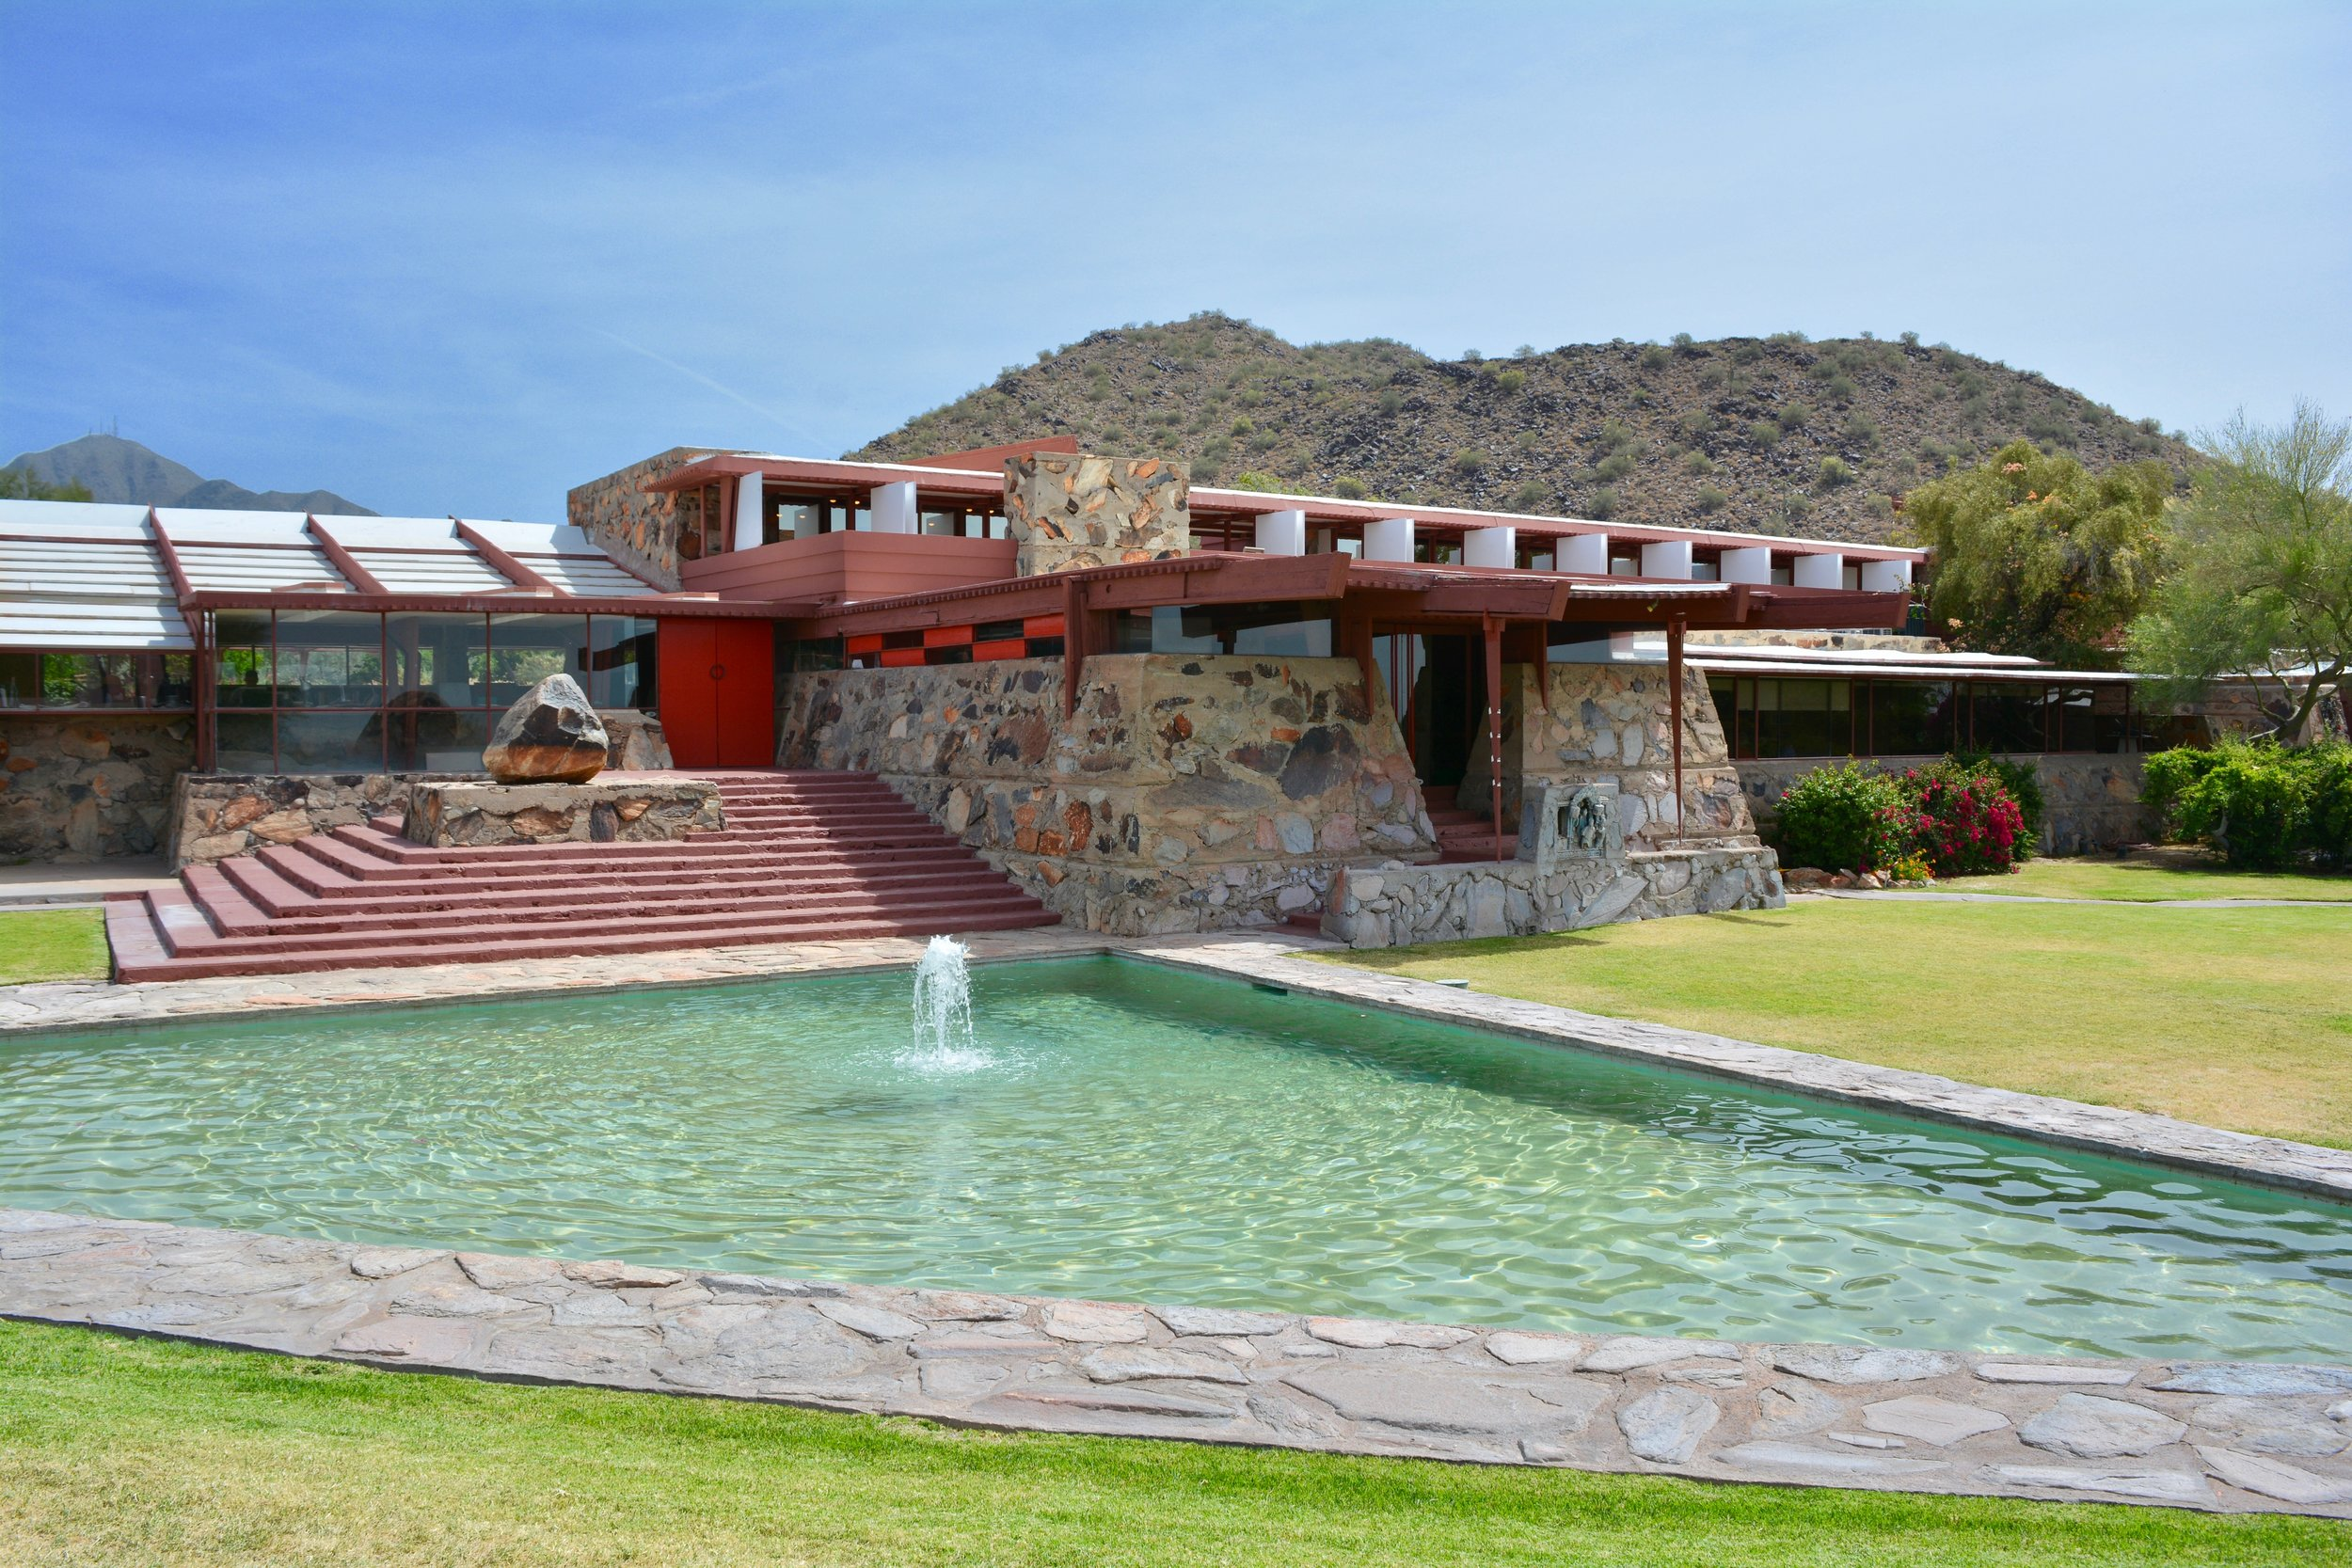 Frank Lloyd Wright's Taliesin West in Scottsdale, AZ